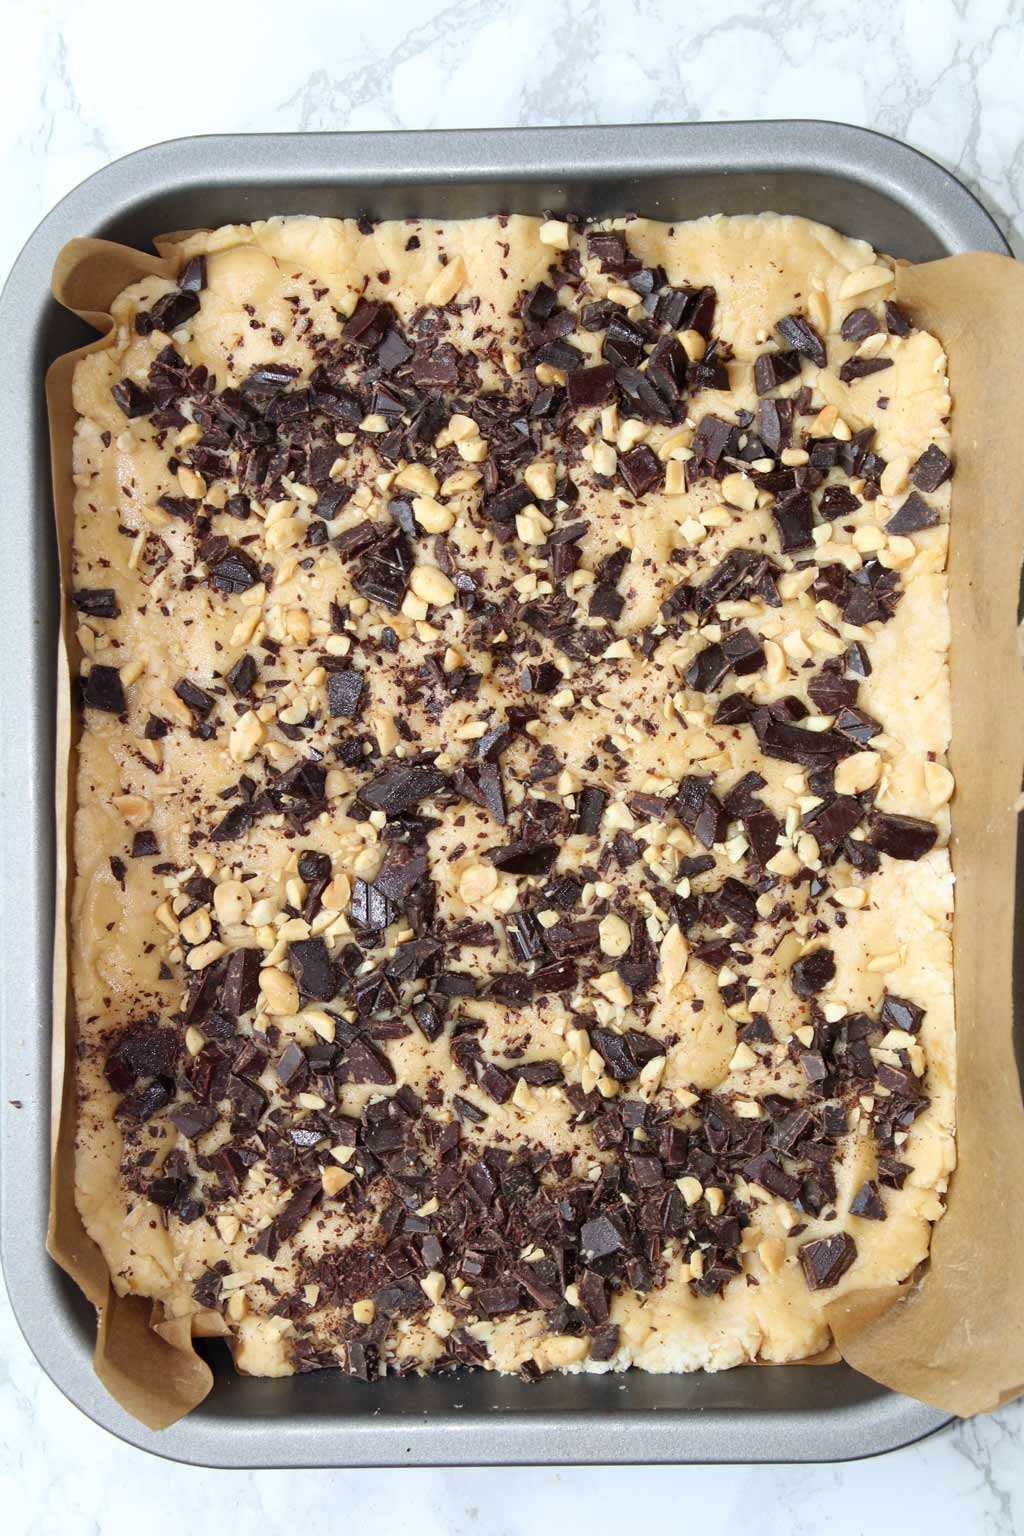 fudge in tray with chopped chocolate and chopped peanuts on top